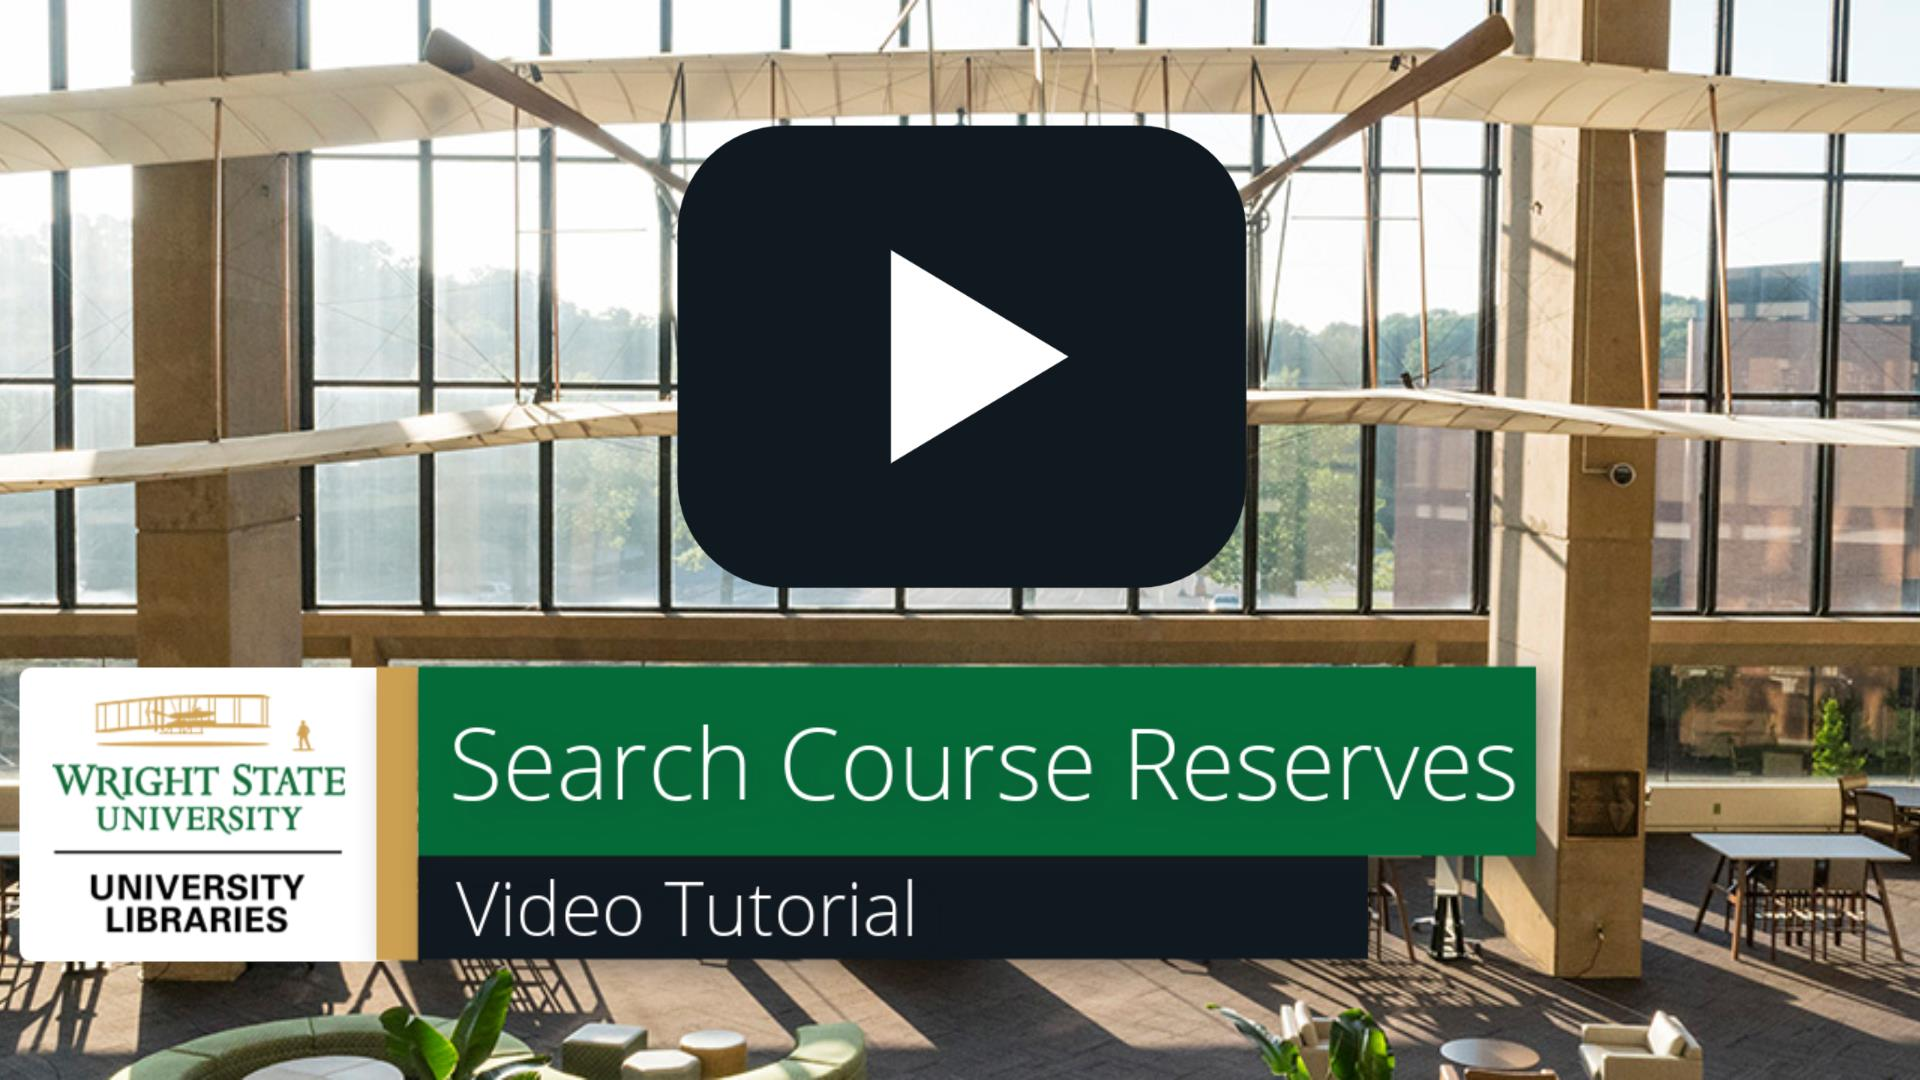 Search Course Reserves: Video Tutorial